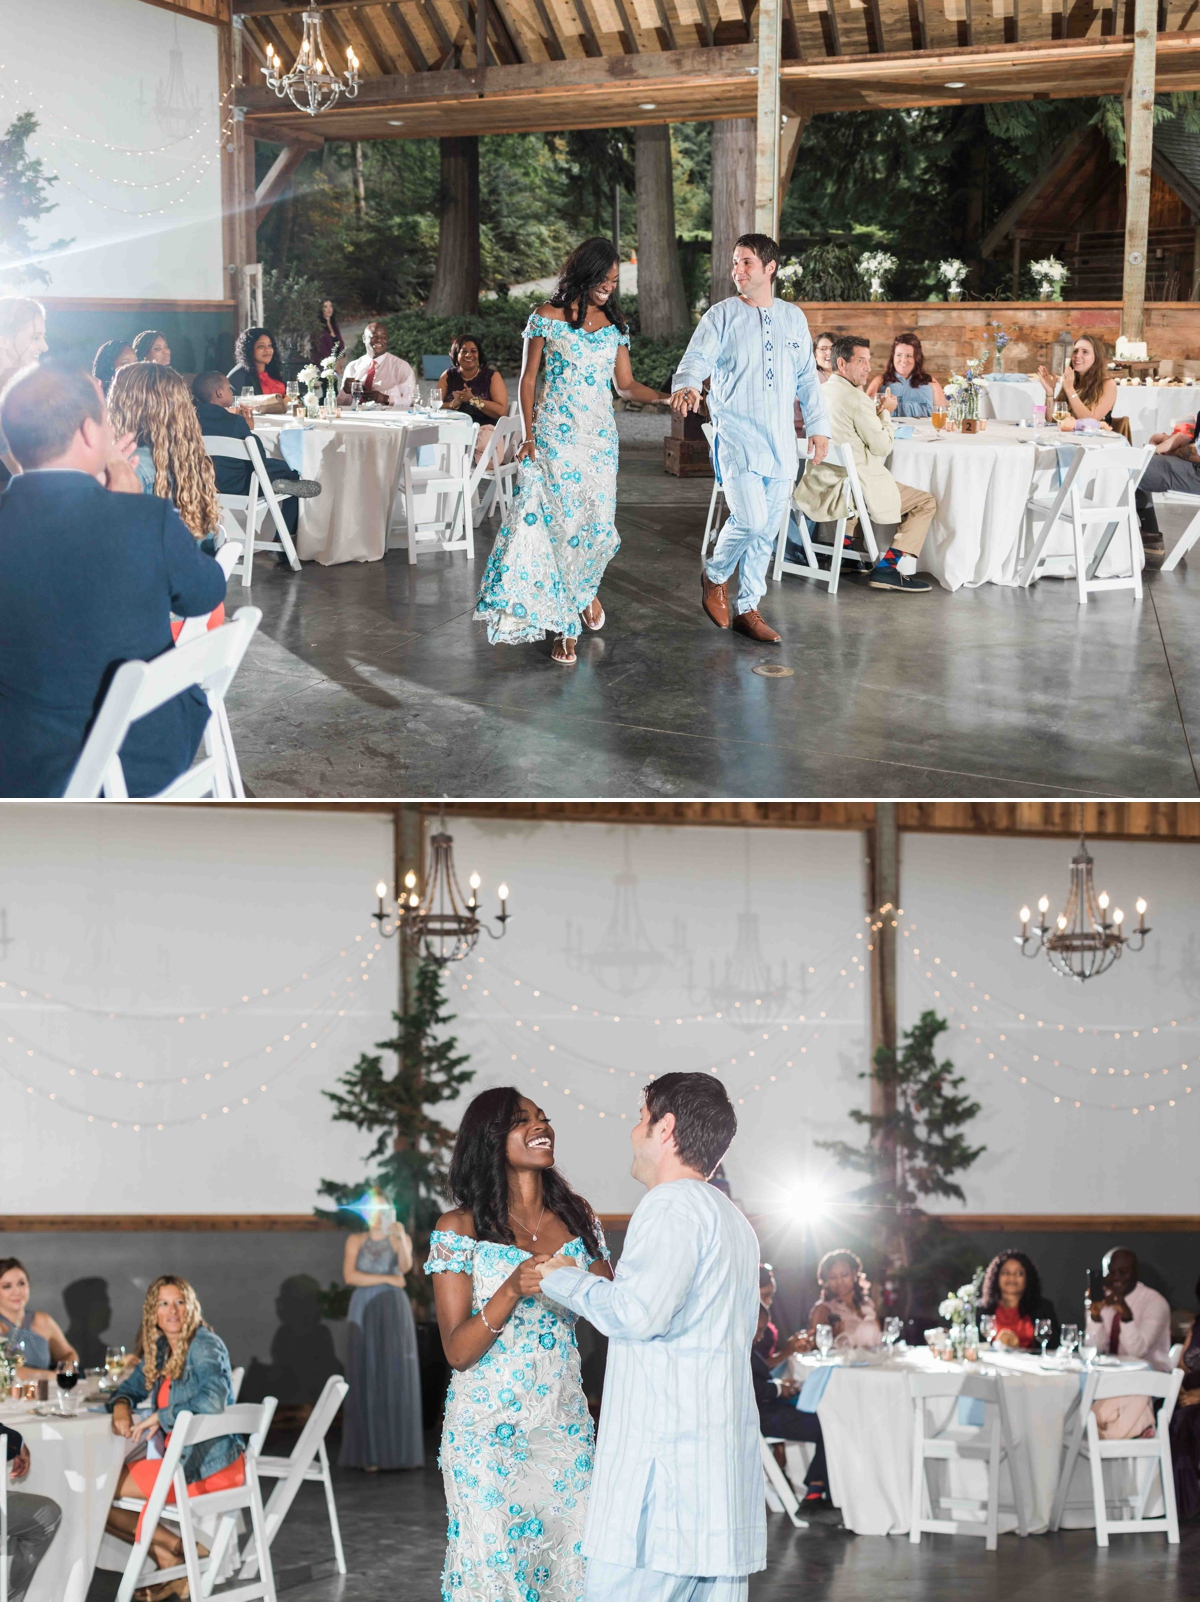 First dance at Green Gates at Flowing Lake. Photographs by Joanna Monger Photography, Award Winning Snohomish Wedding Photographer.